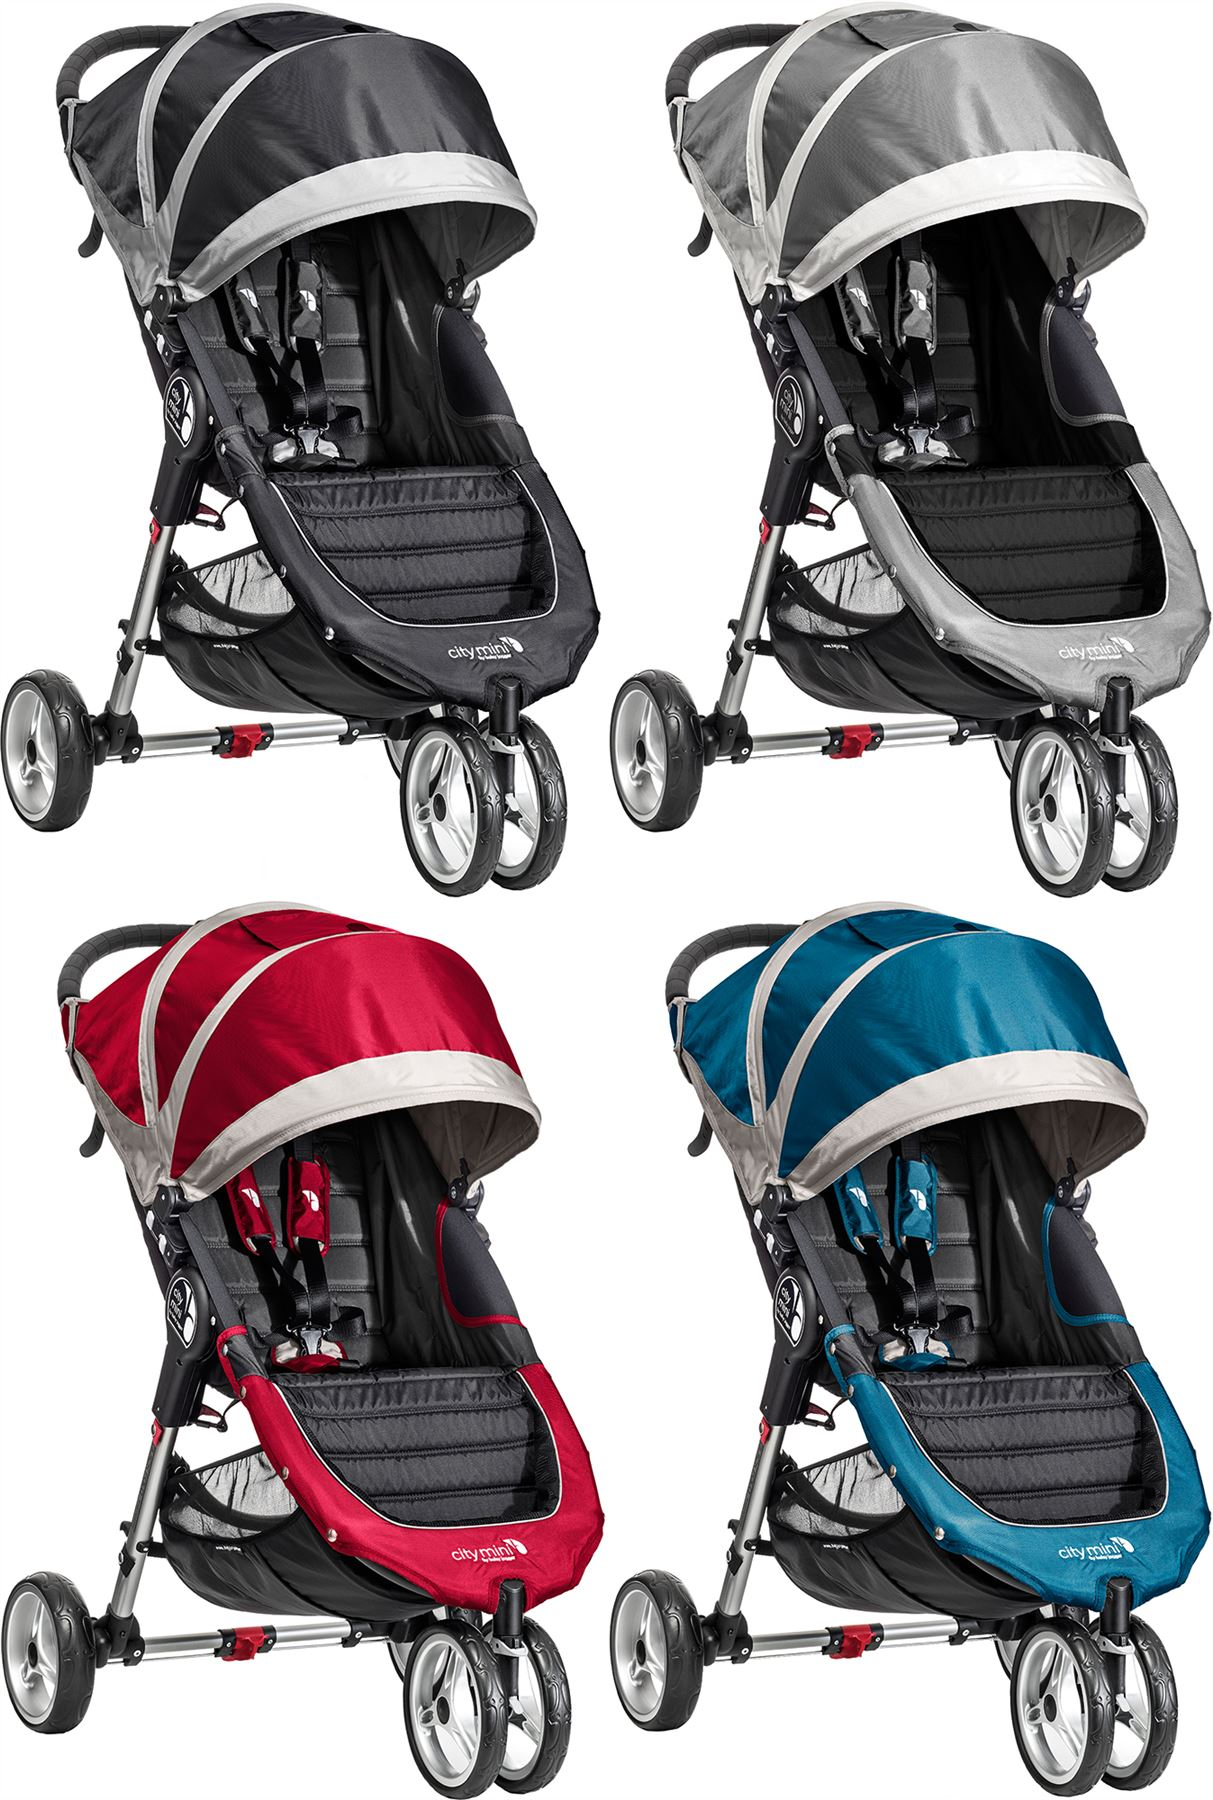 Details About Baby Jogger City Mini Single Stroller Buggy Pushchair Baby Travel Bn